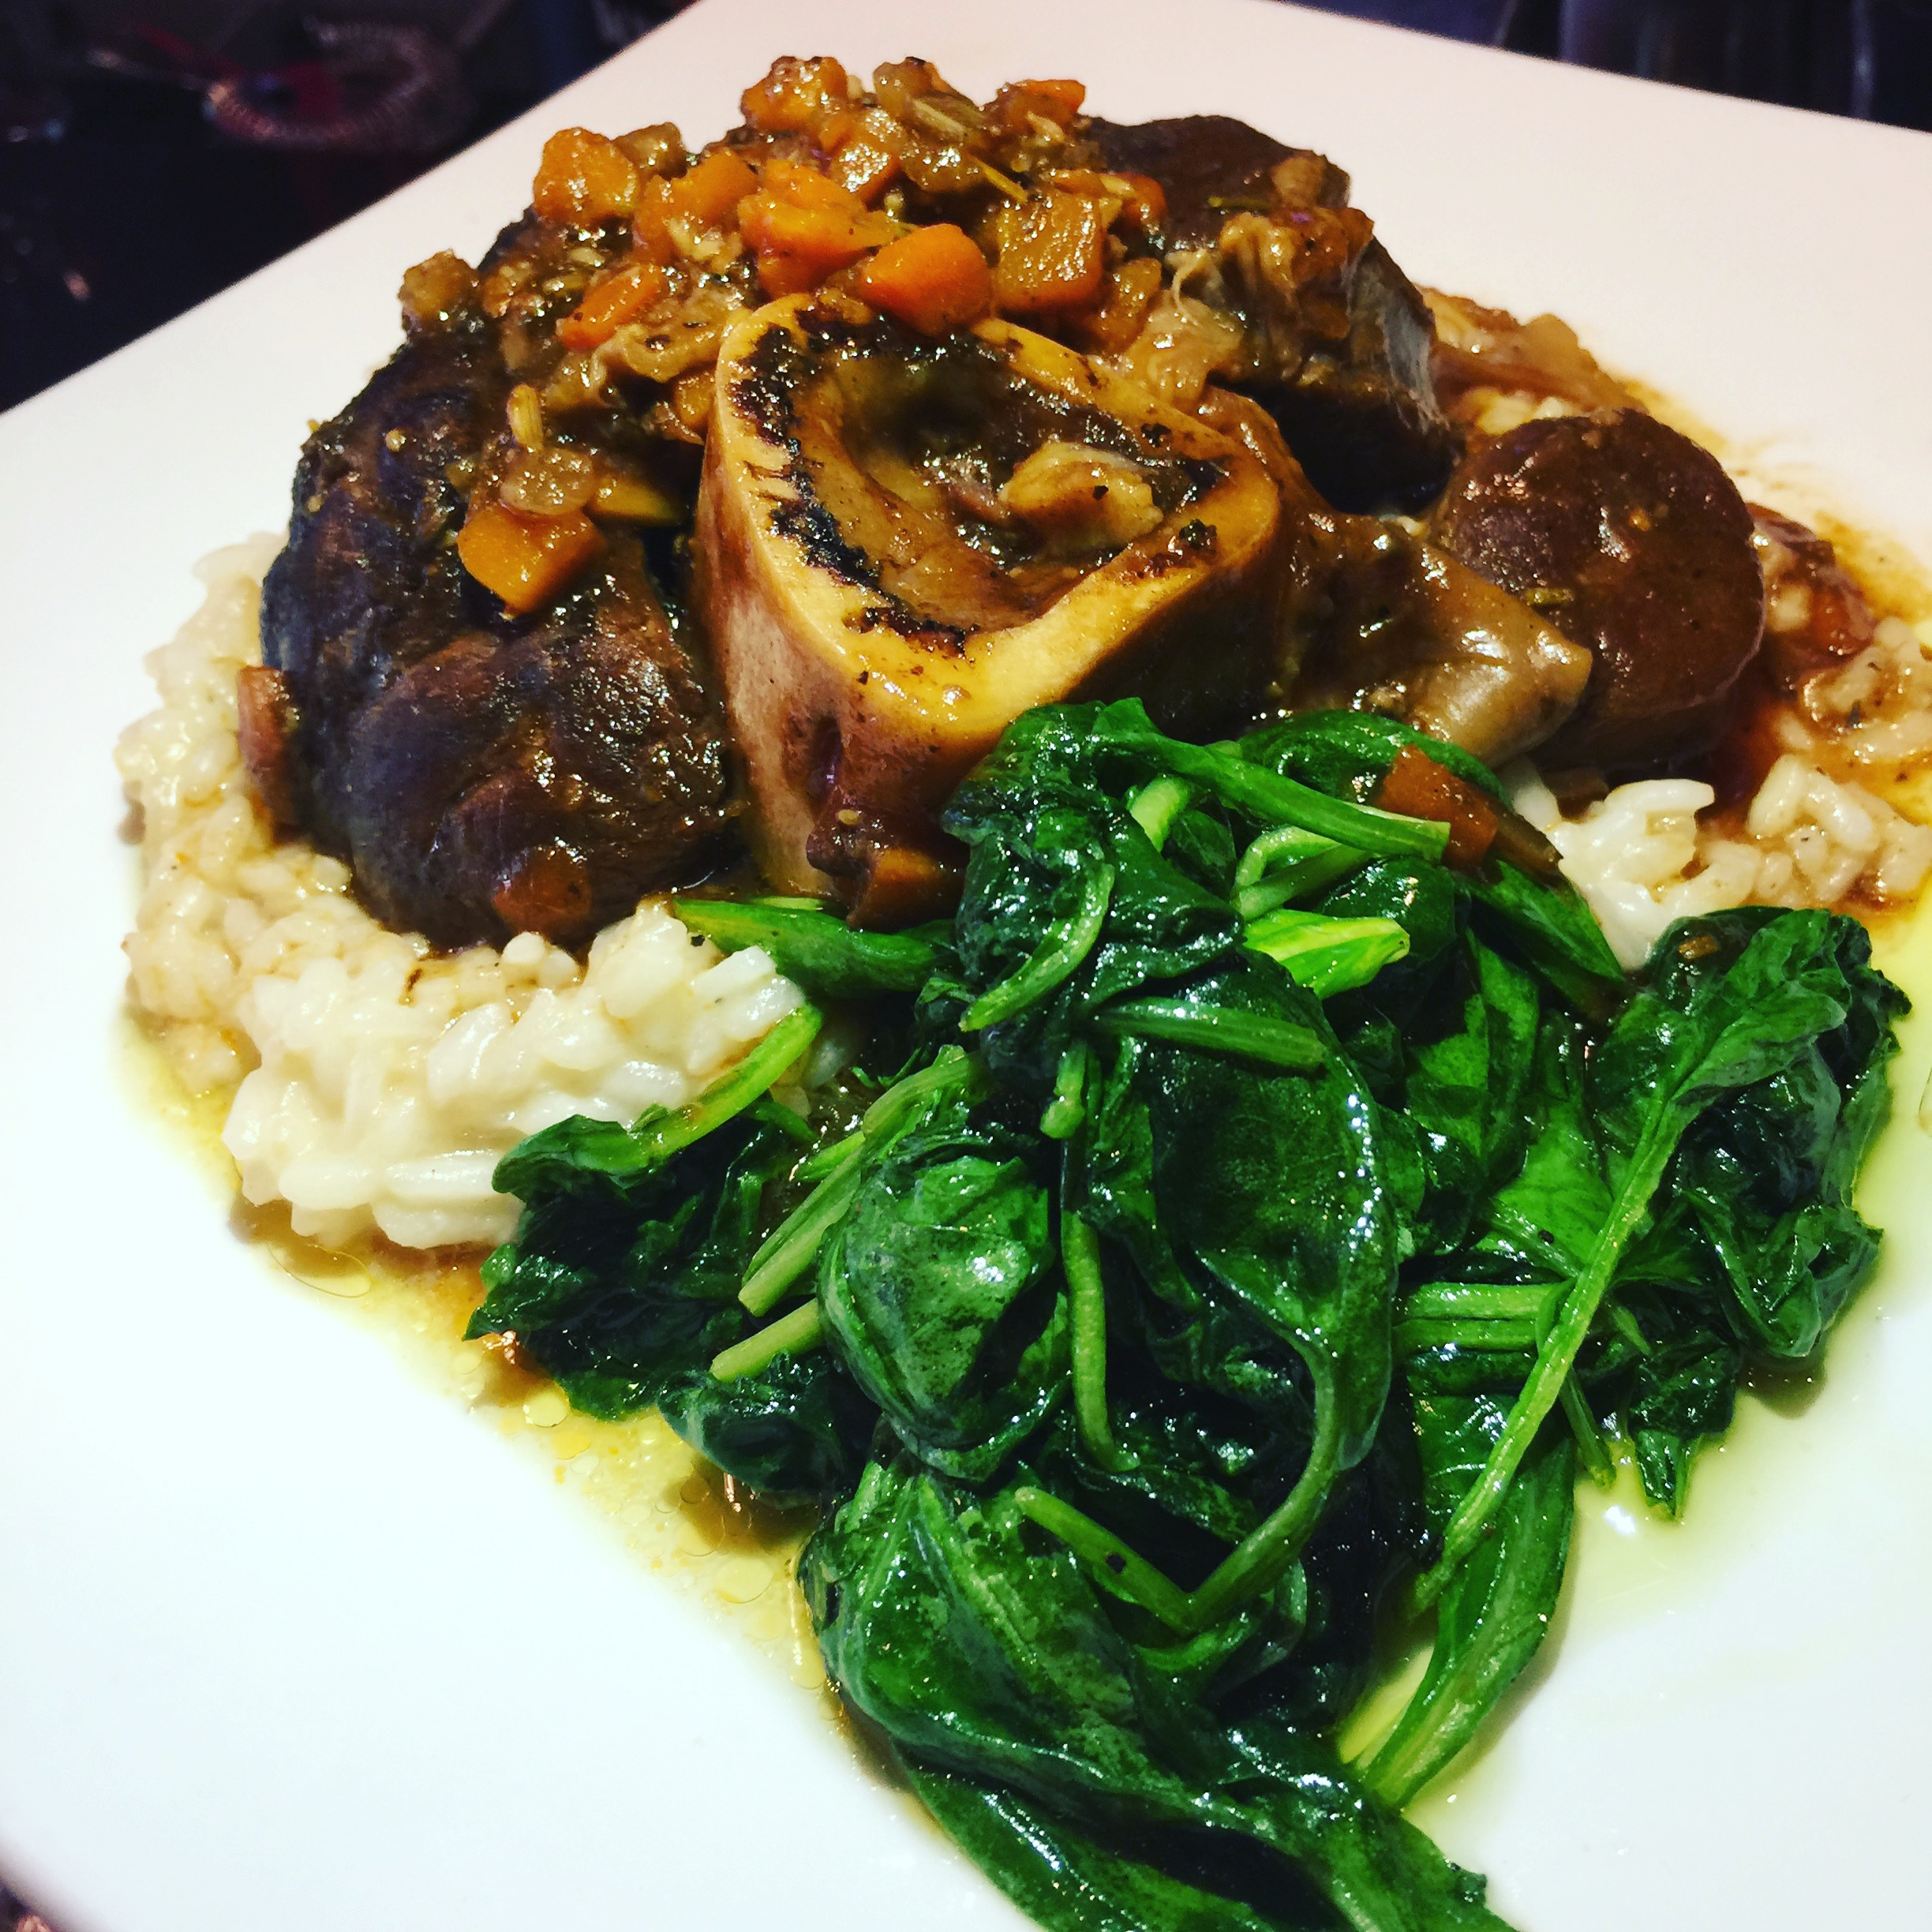 Veal Osso Buco w/ porcini risotto & sautéed spinach cooked to perfection, another favorite - Lou G